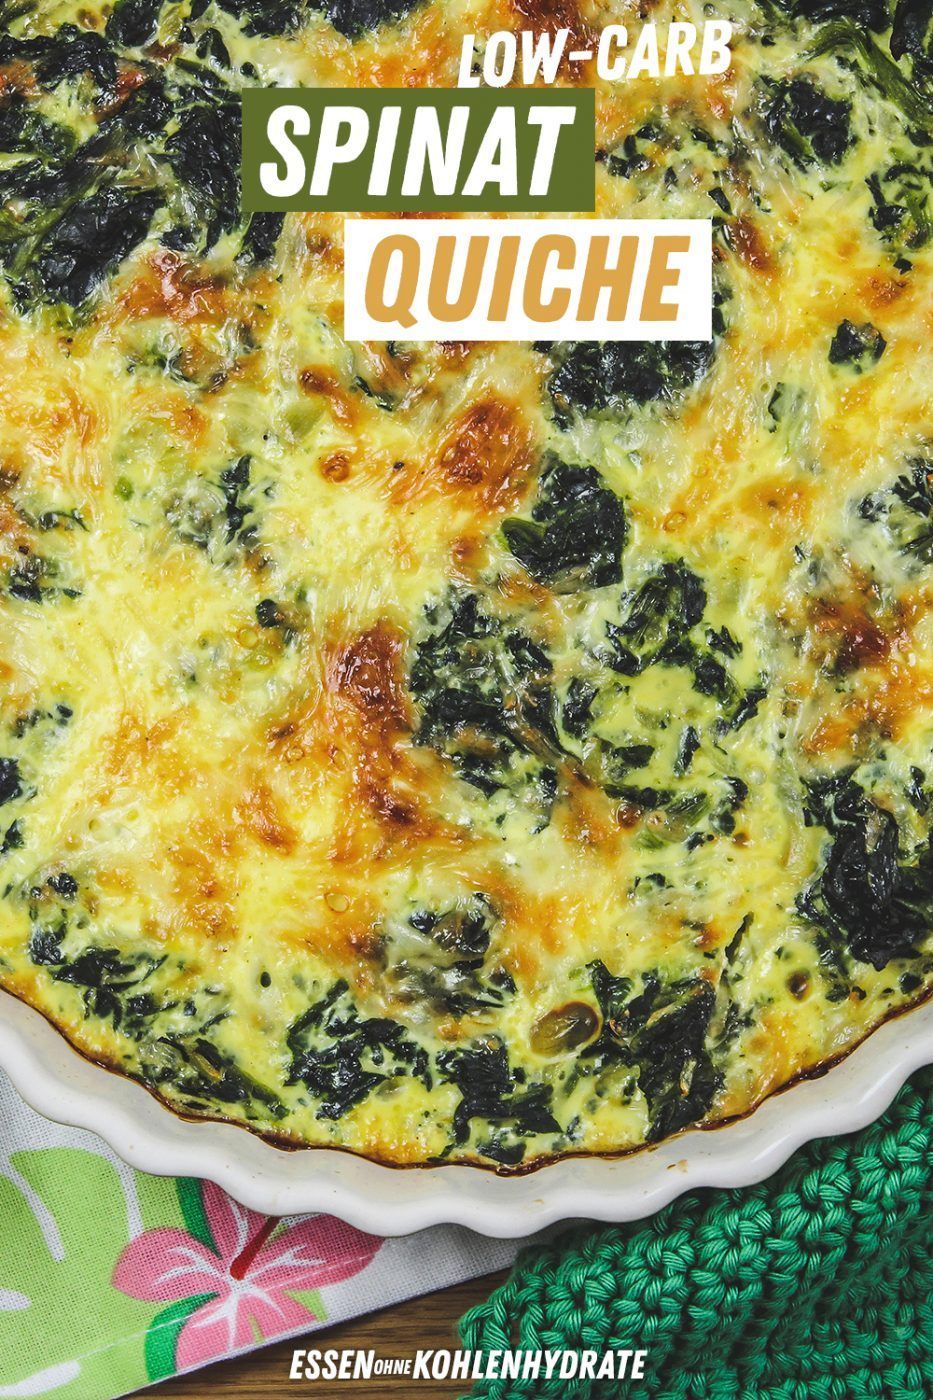 Low Carb Spinat-Quiche - Essen ohne Kohlenhydrate